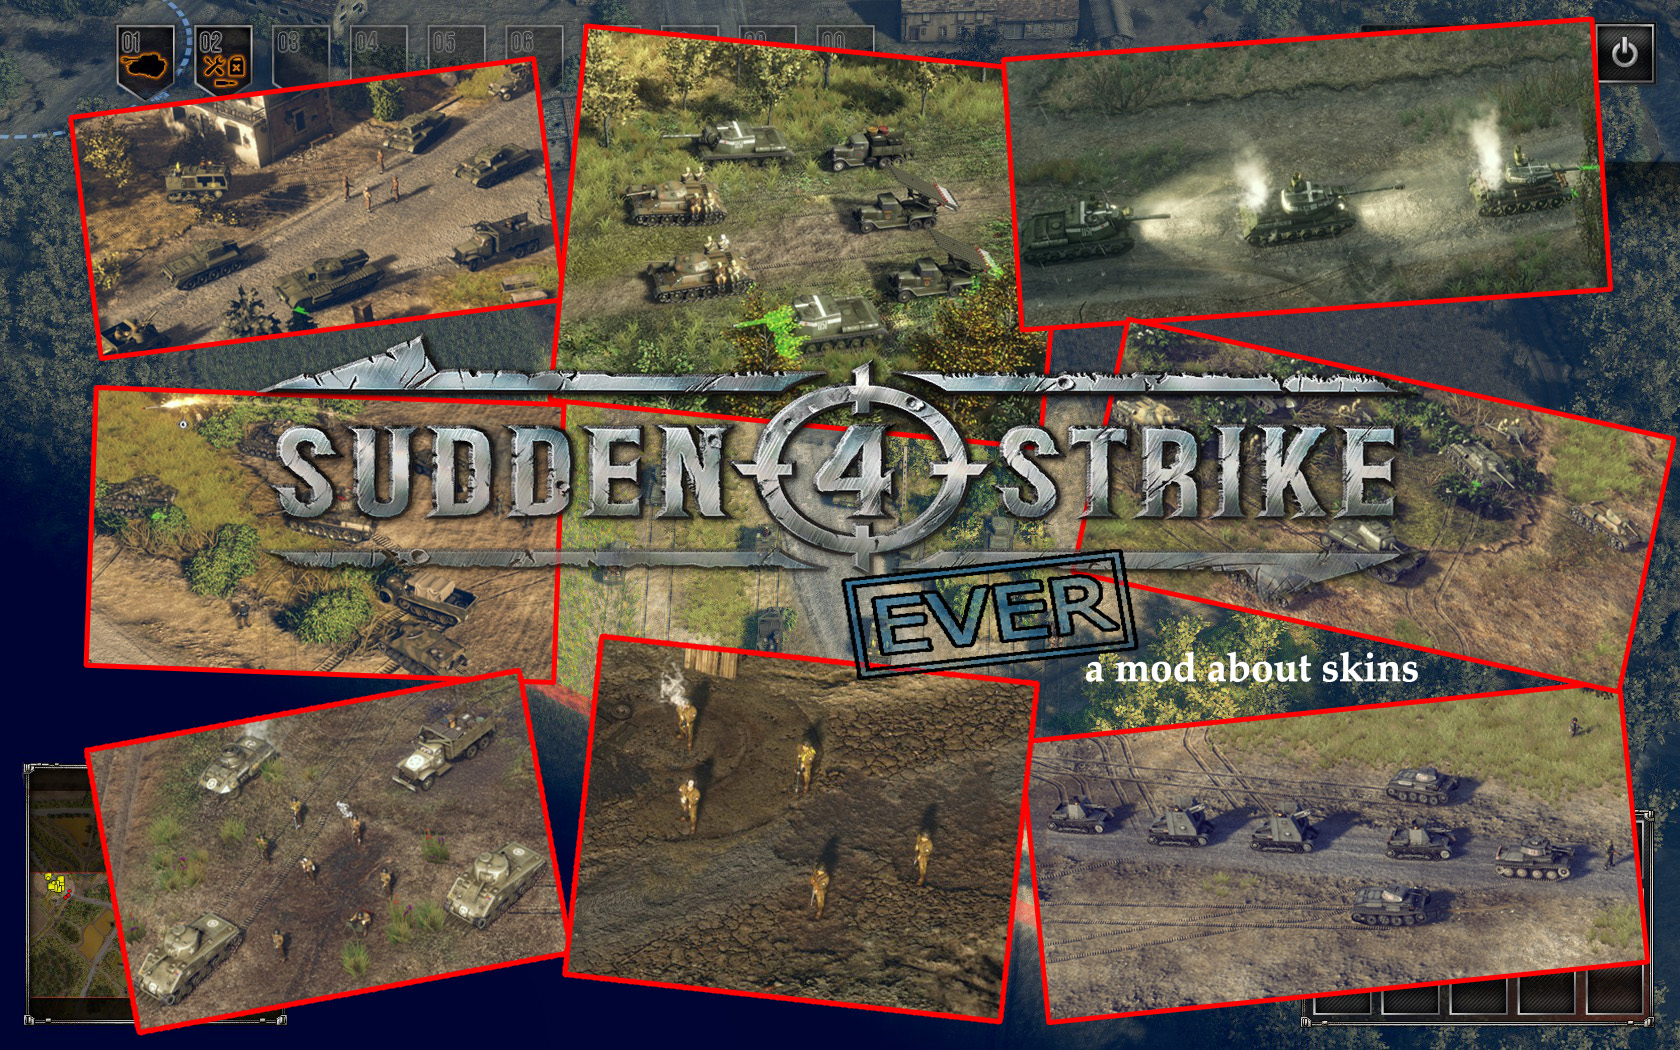 https://www.sudden-strike-maps.de/images/editor/sudden_strike_4ever_skins_mod_1_20181101_1645548188.jpg